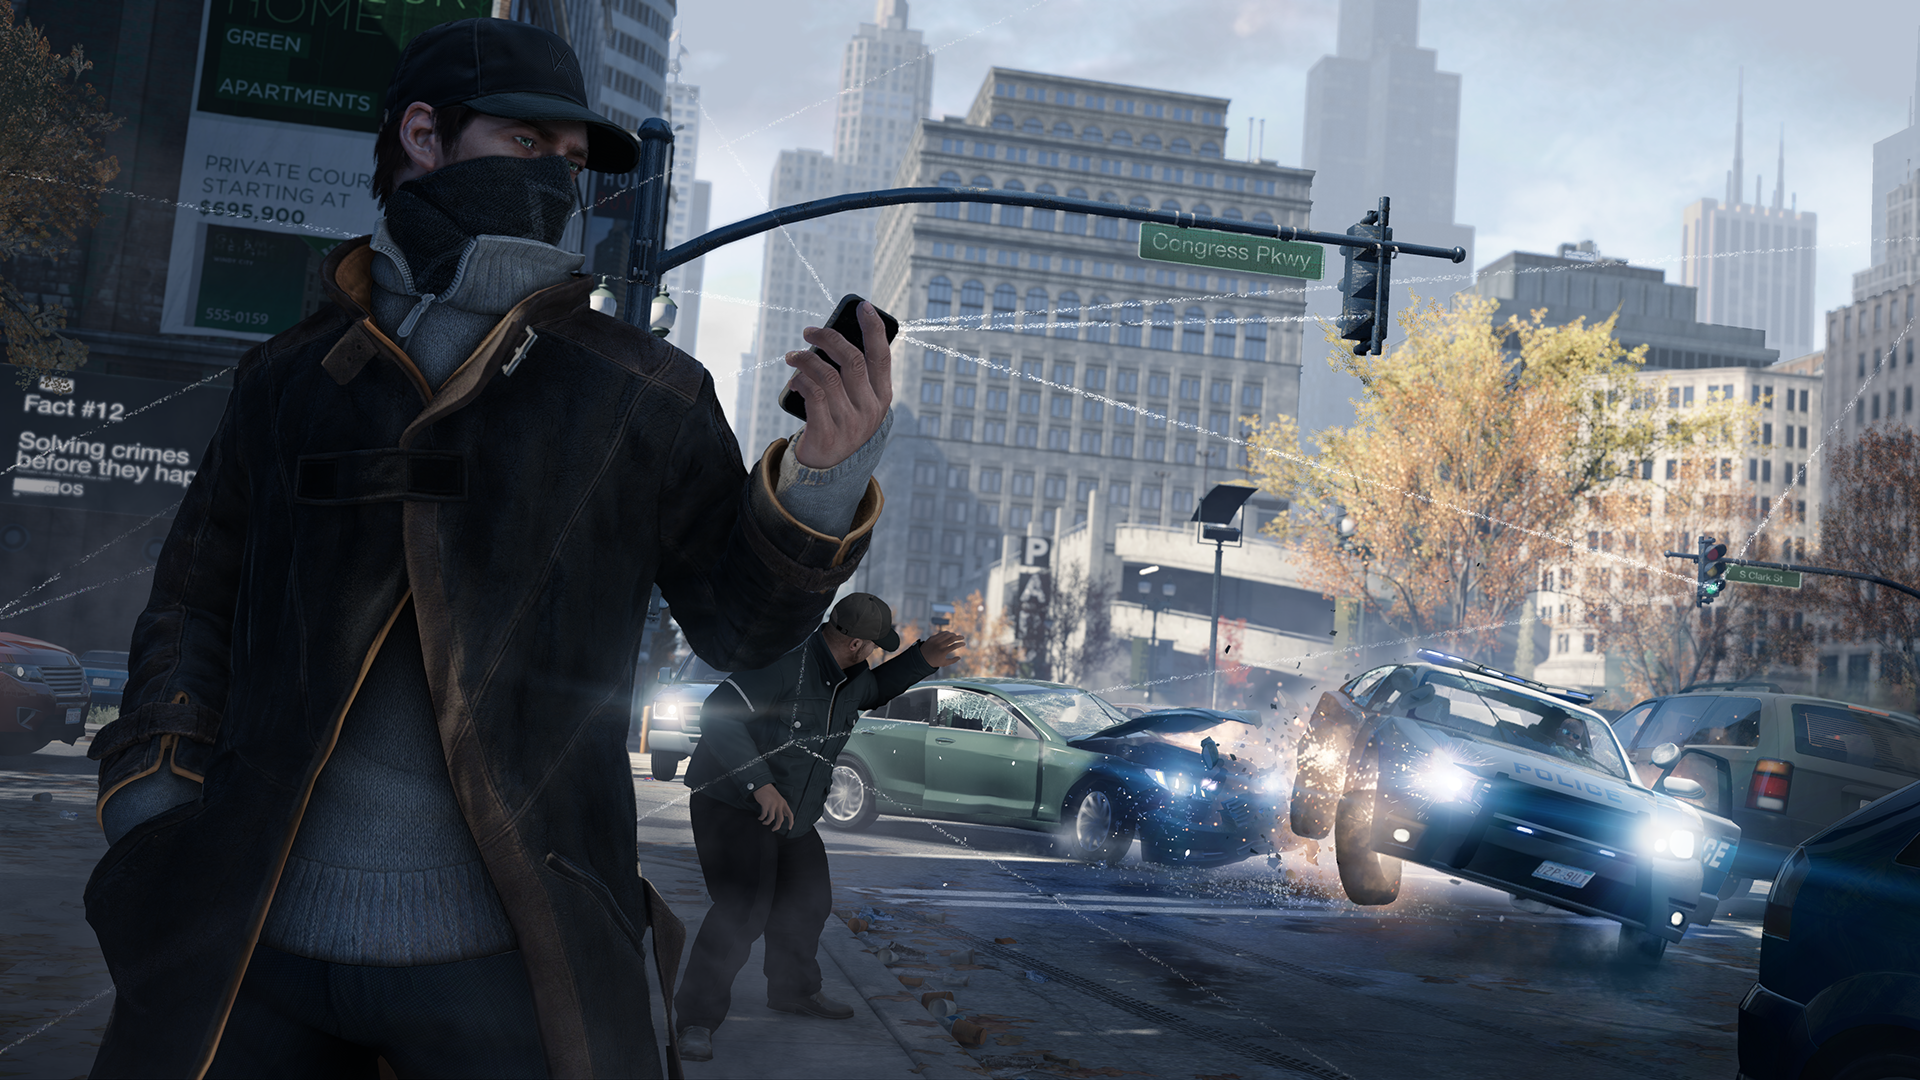 Group of watch dogs new 1080p watch dogs wallpapers voltagebd Images